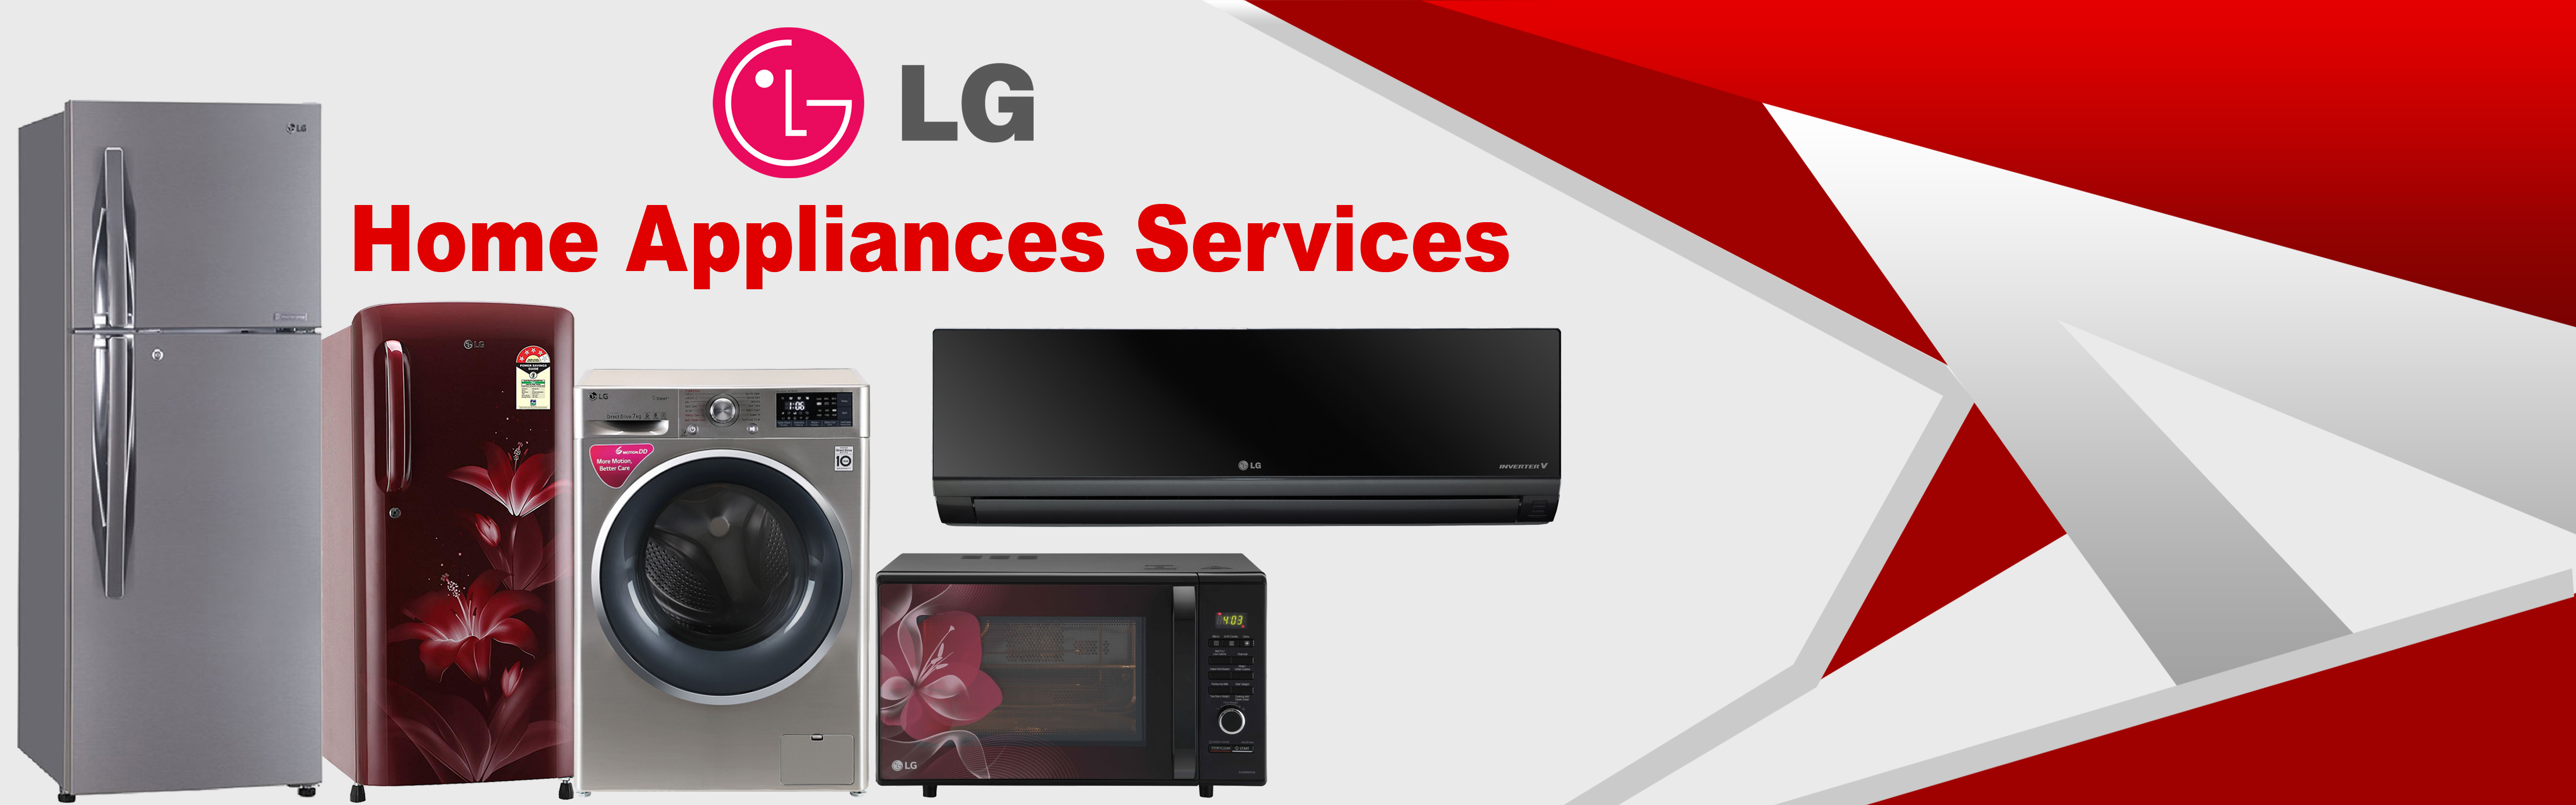 LG Service Support | LG Service Centres in Chennai With Many Branch